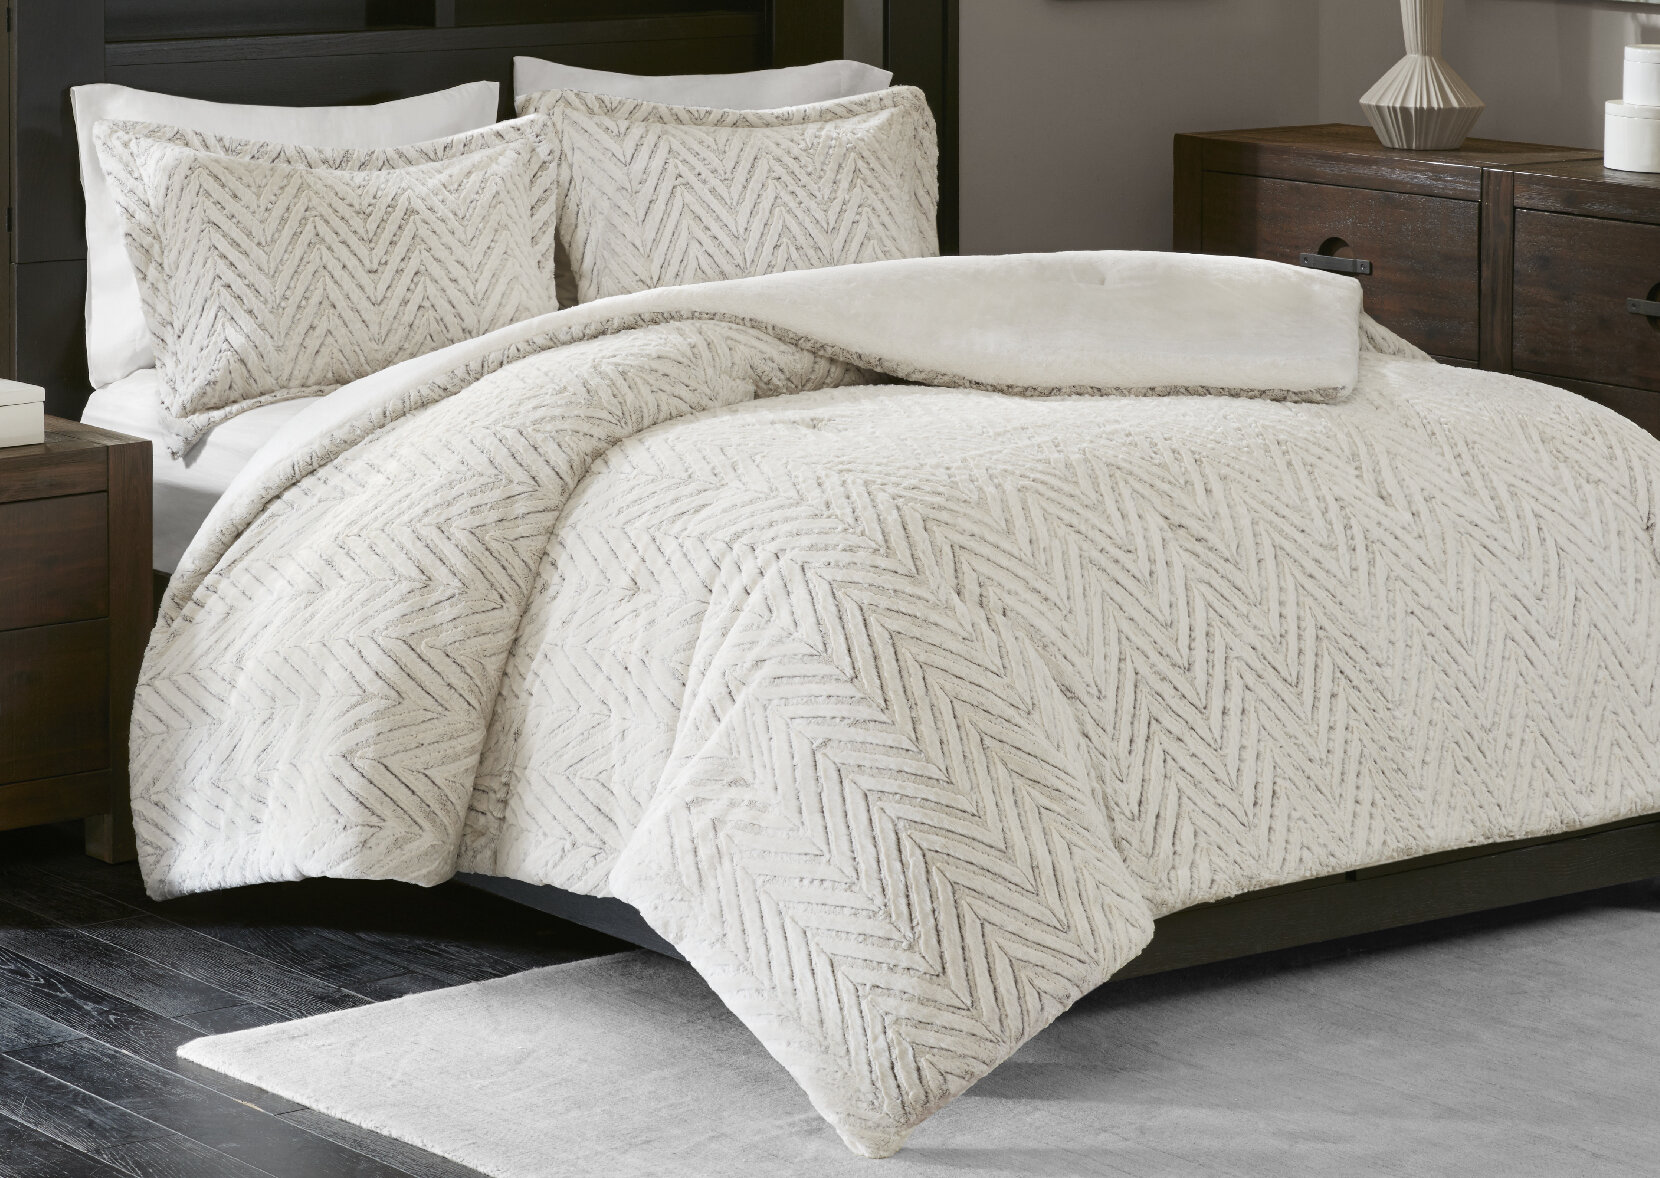 Down Gray Silver Comforters Sets You Ll Love In 2021 Wayfair